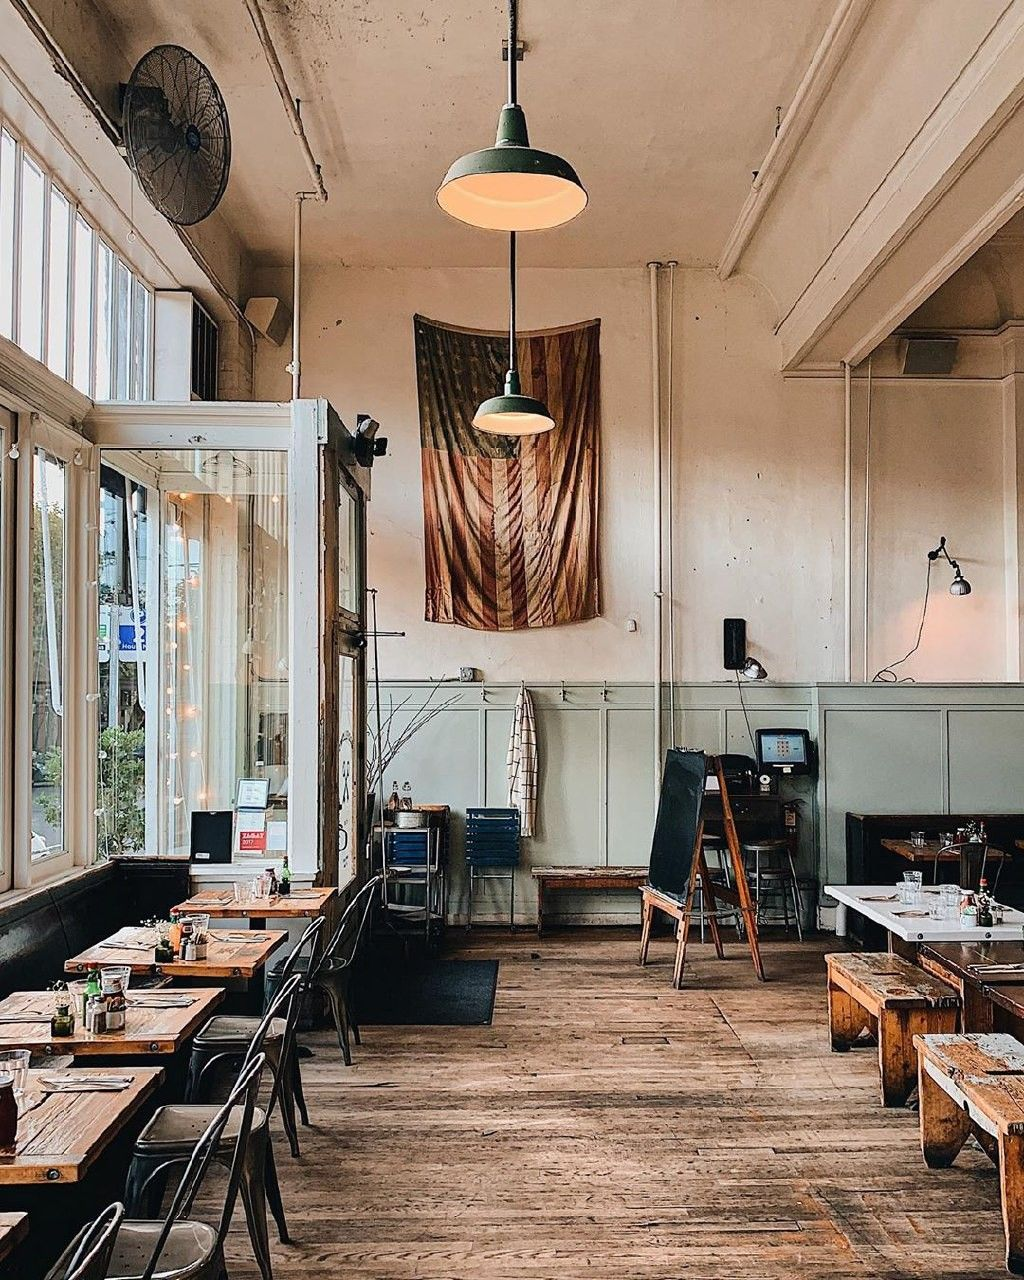 Seattle best places to visit in 2020 Vintage cafe